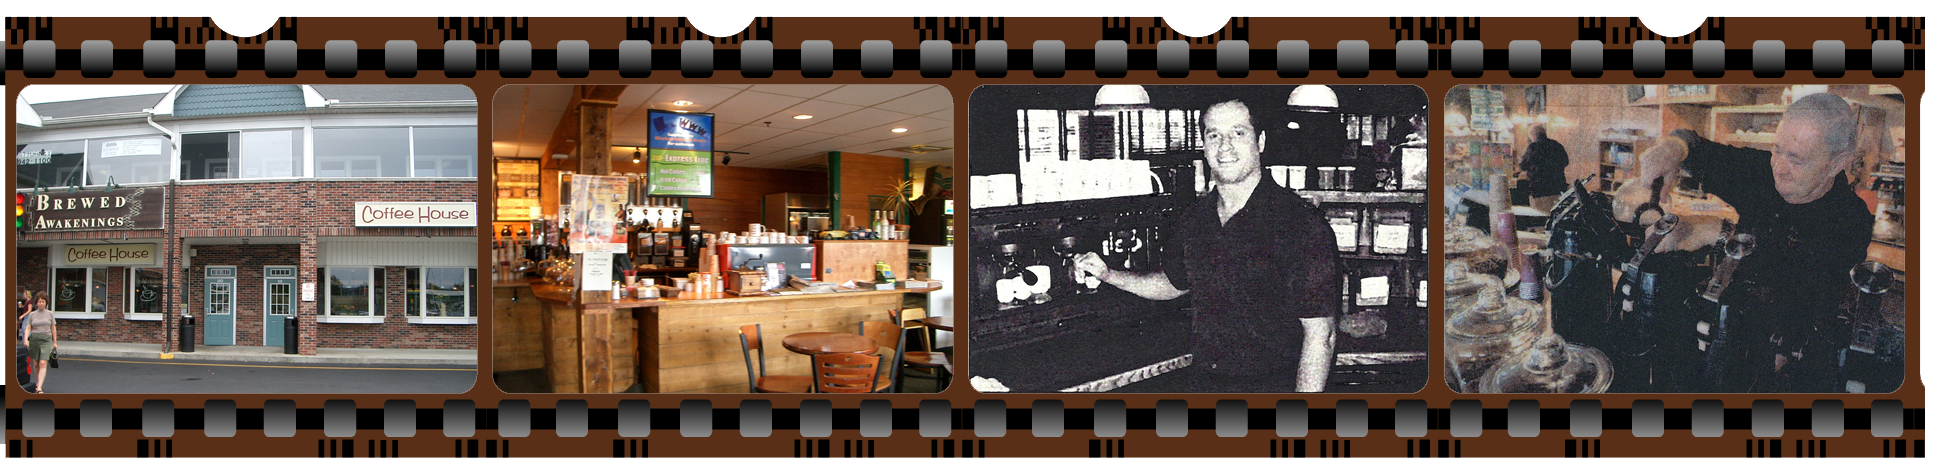 best-coffee-house-rhode-island